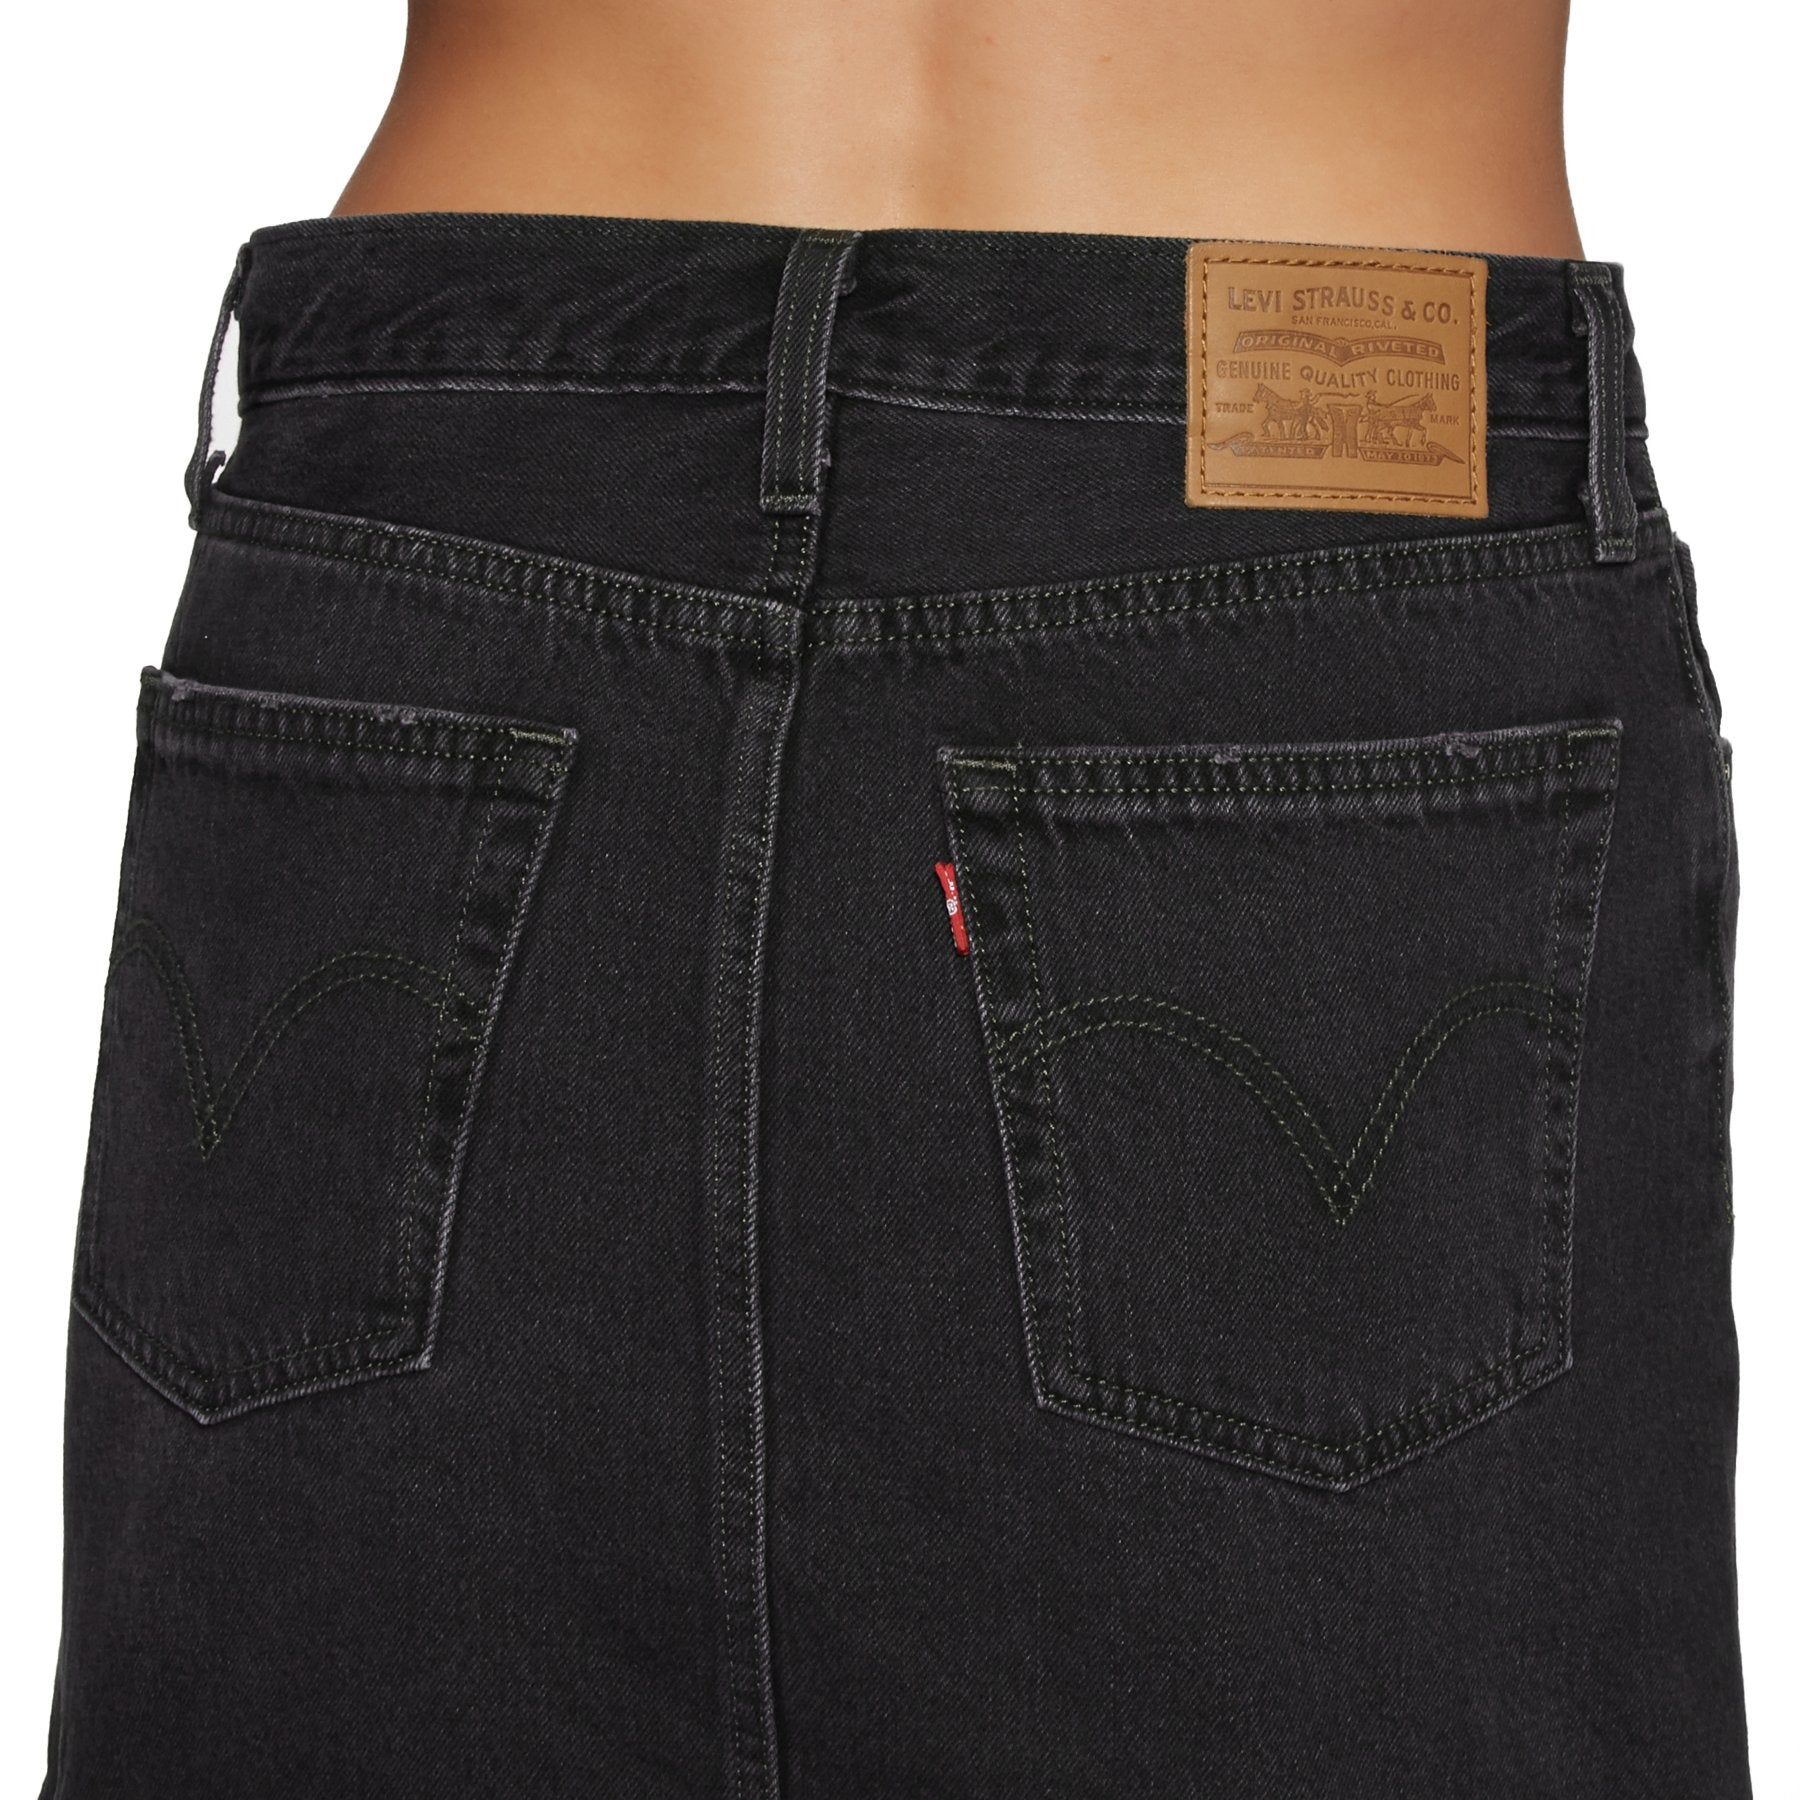 Levi's Denim Deconstructed Skirt